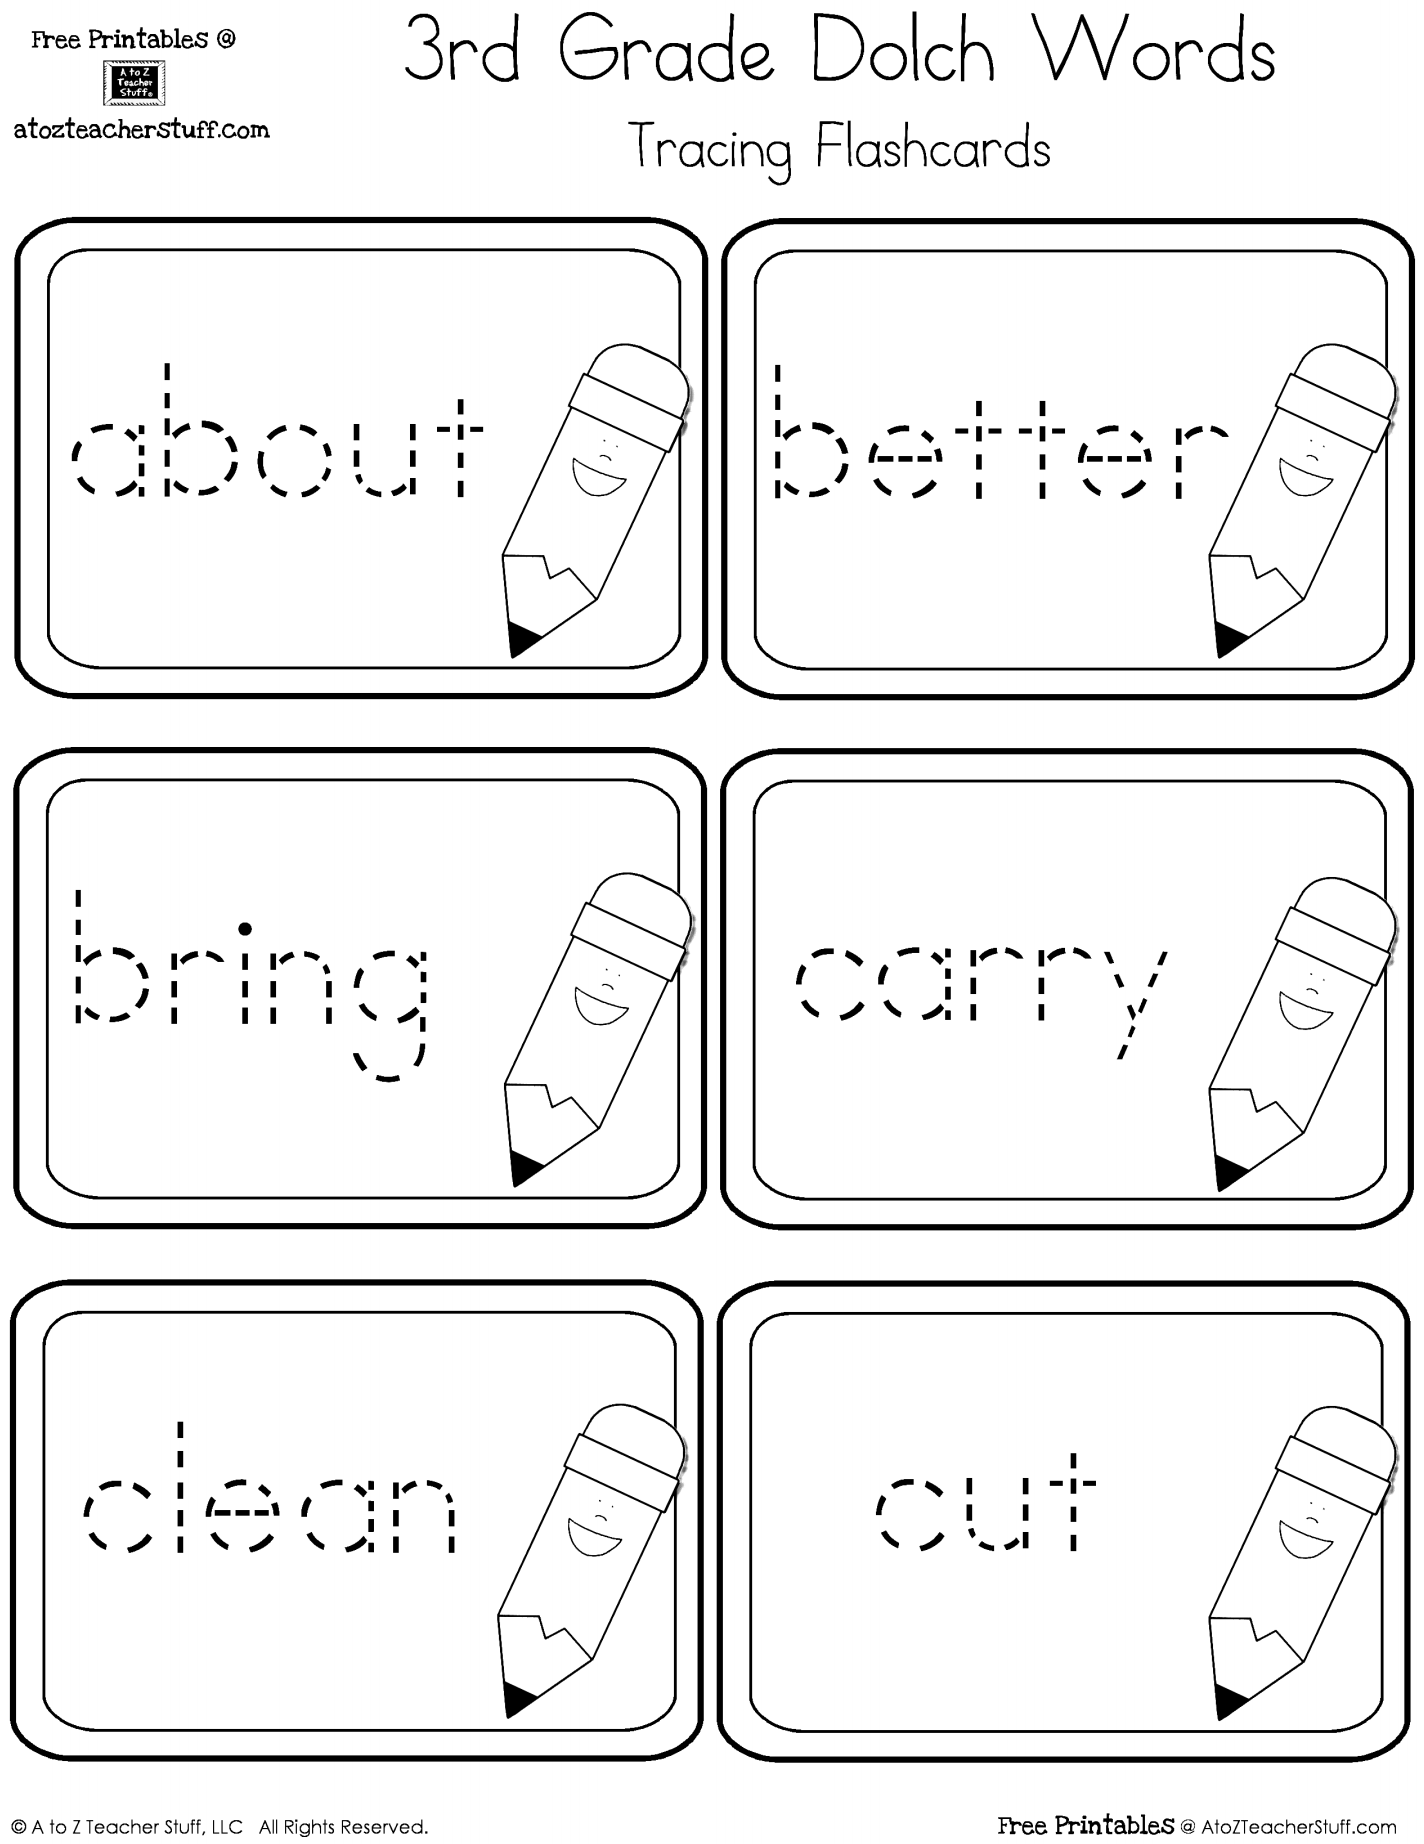 Printables Dolch Sight Words Worksheets third grade dolch sight words tracing flashcards a to z teacher 3rd cards free printables